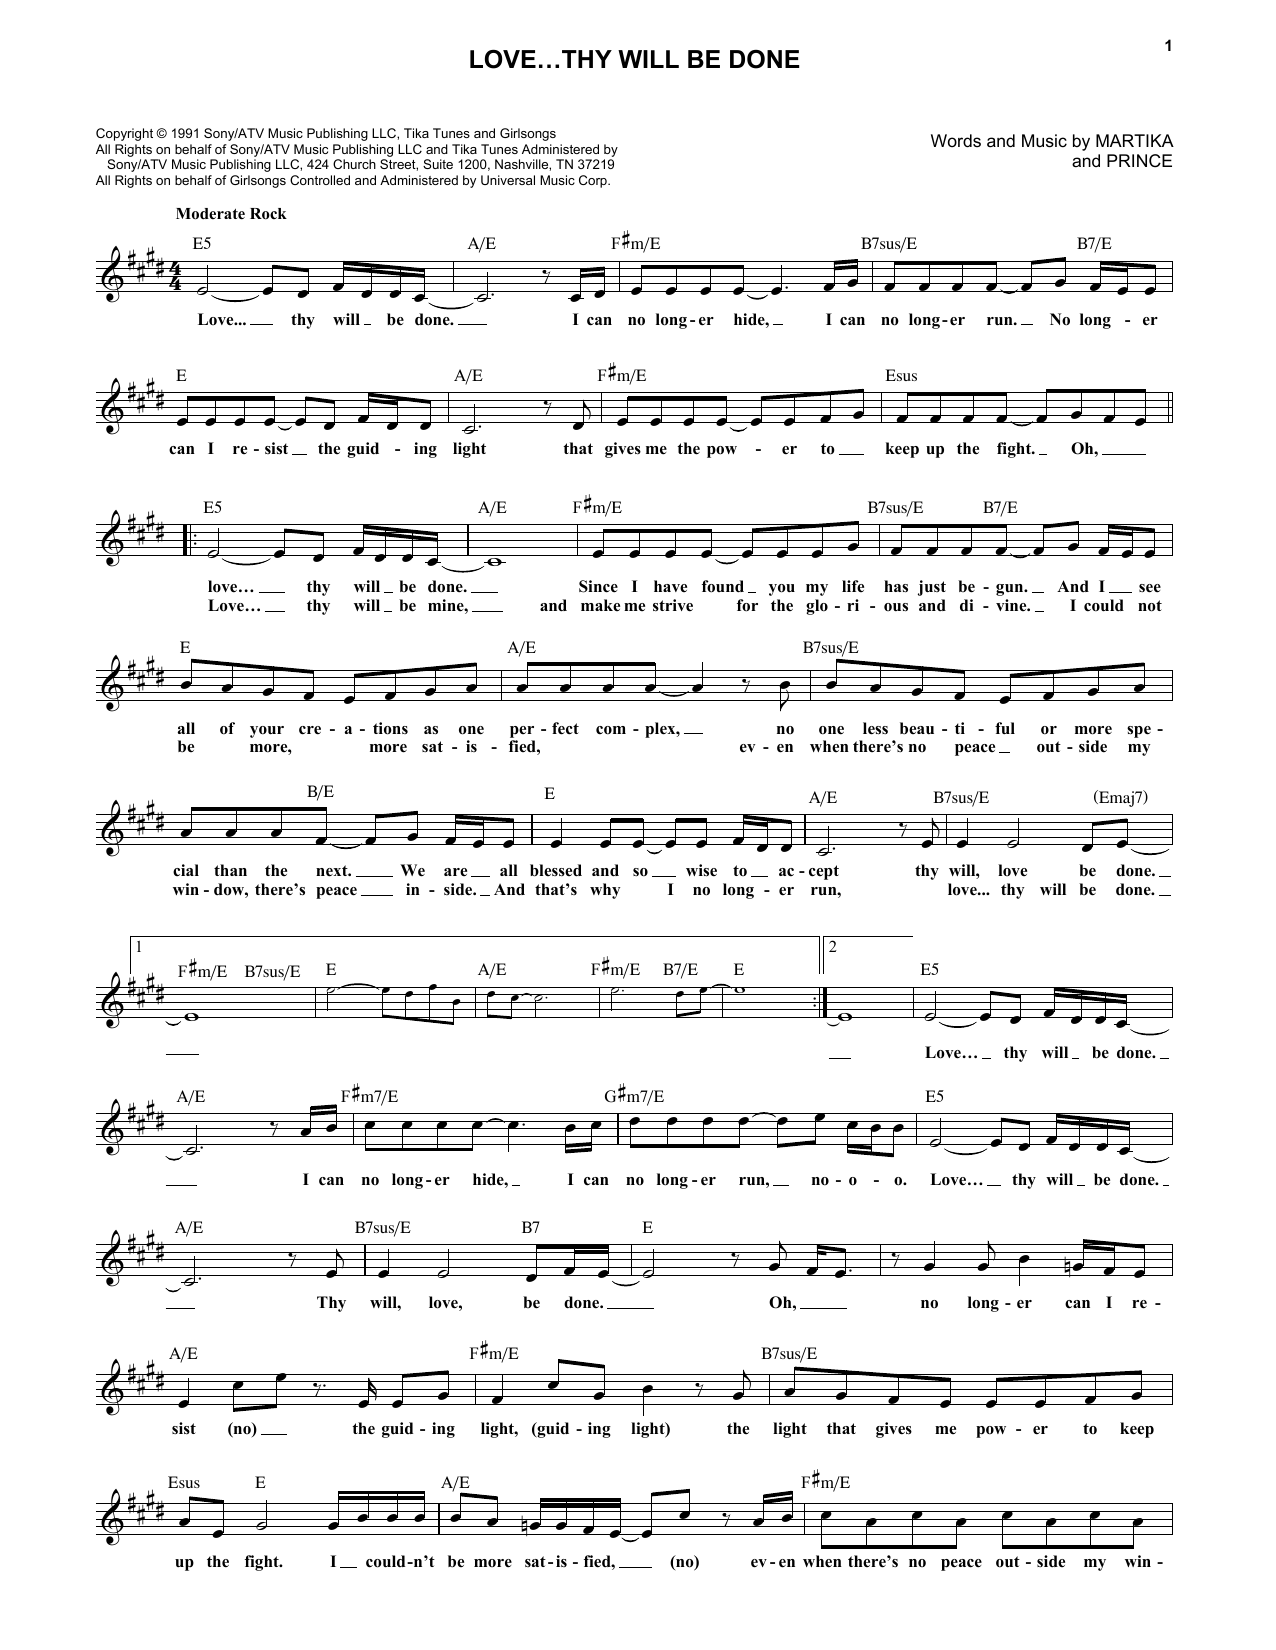 Prince Lovey Will Be Done Sheet Music Notes Chords